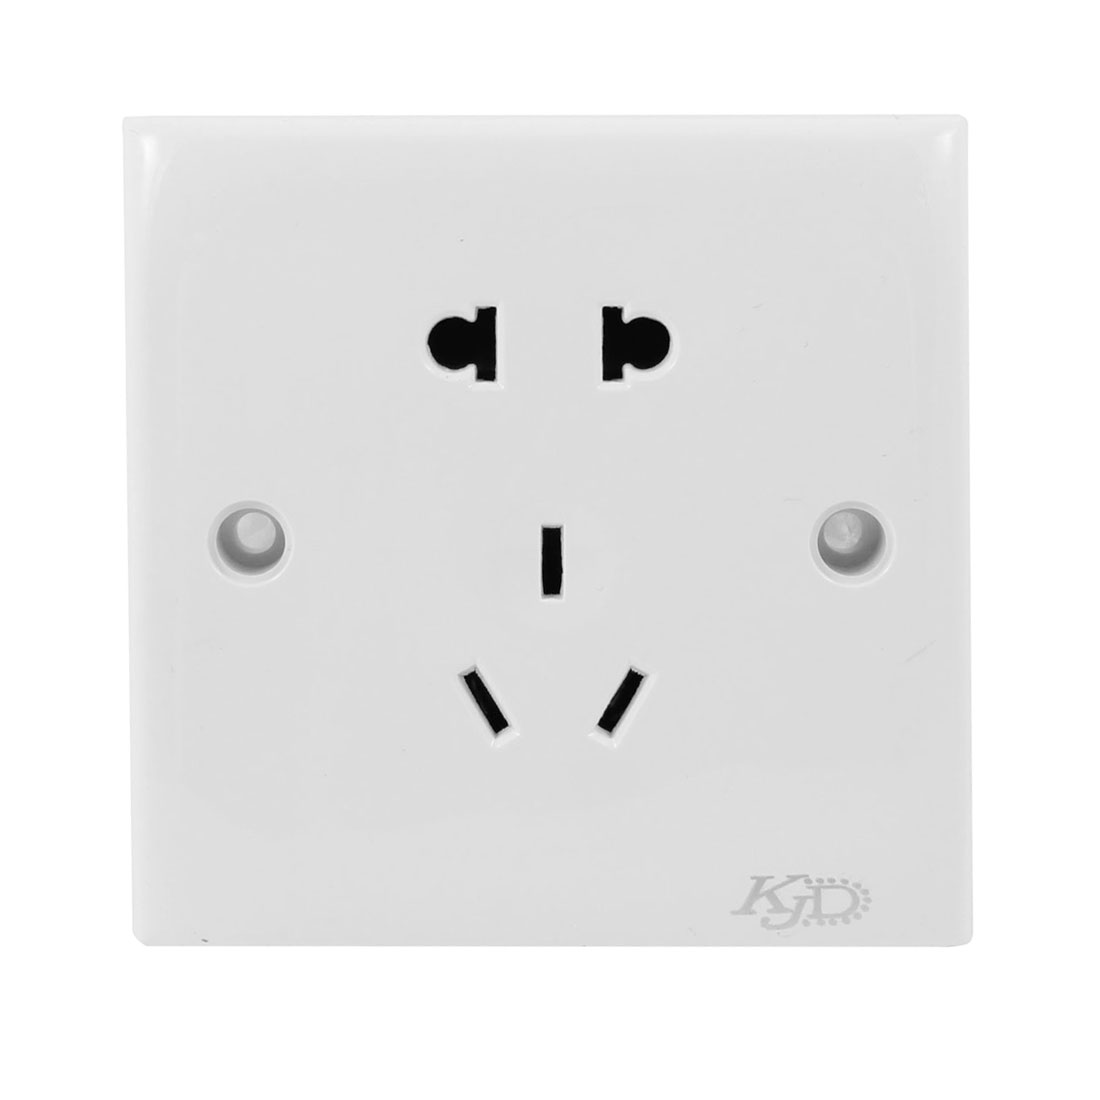 Home Plastic Shell 2 Pin US EU Outlet 3 Pins AU Socket Wall Plate 250VAC 10A